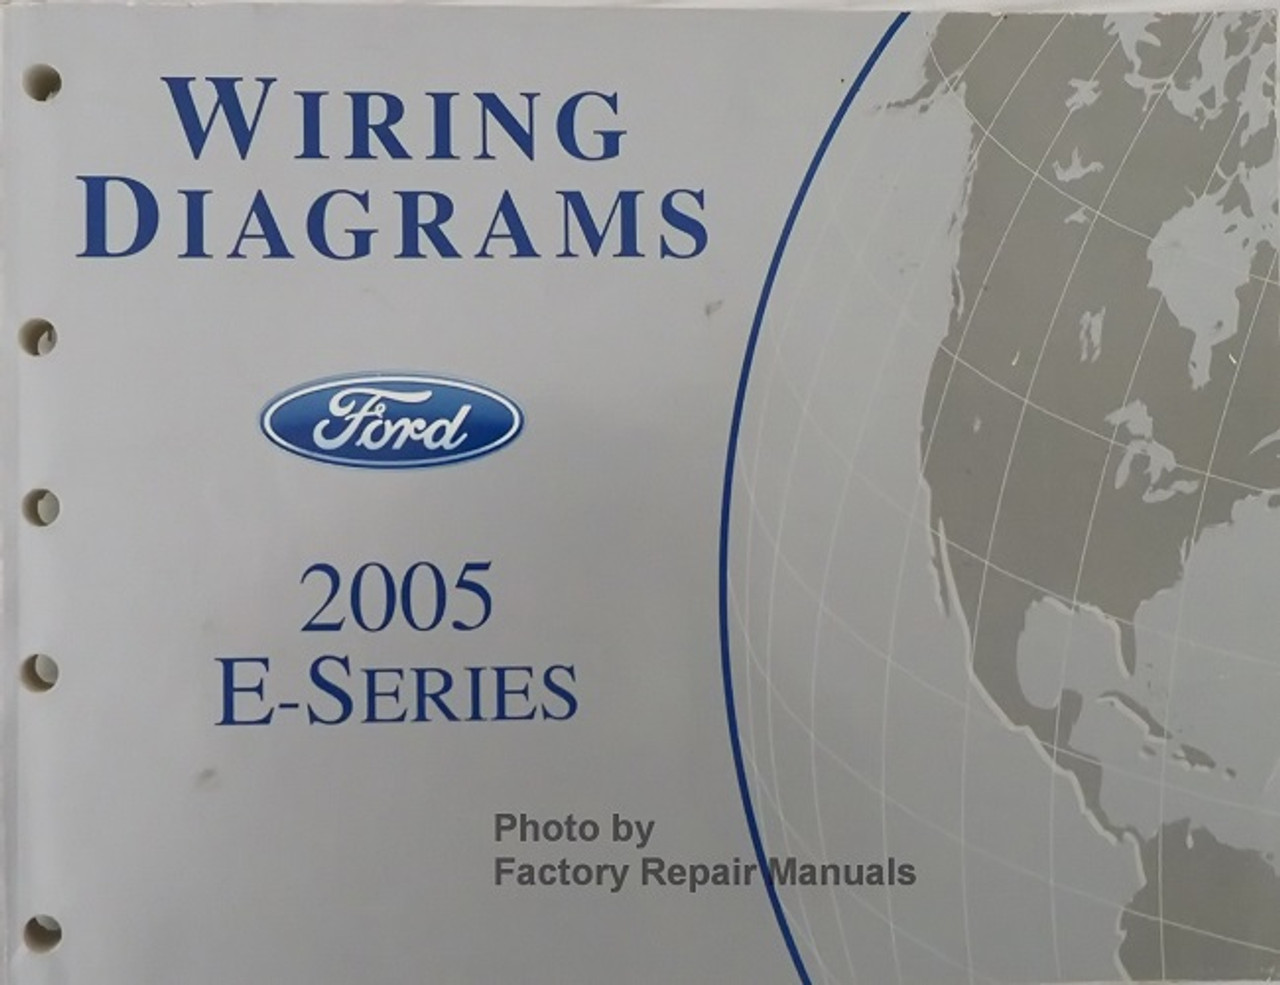 Ford 1600 Wiring Diagram